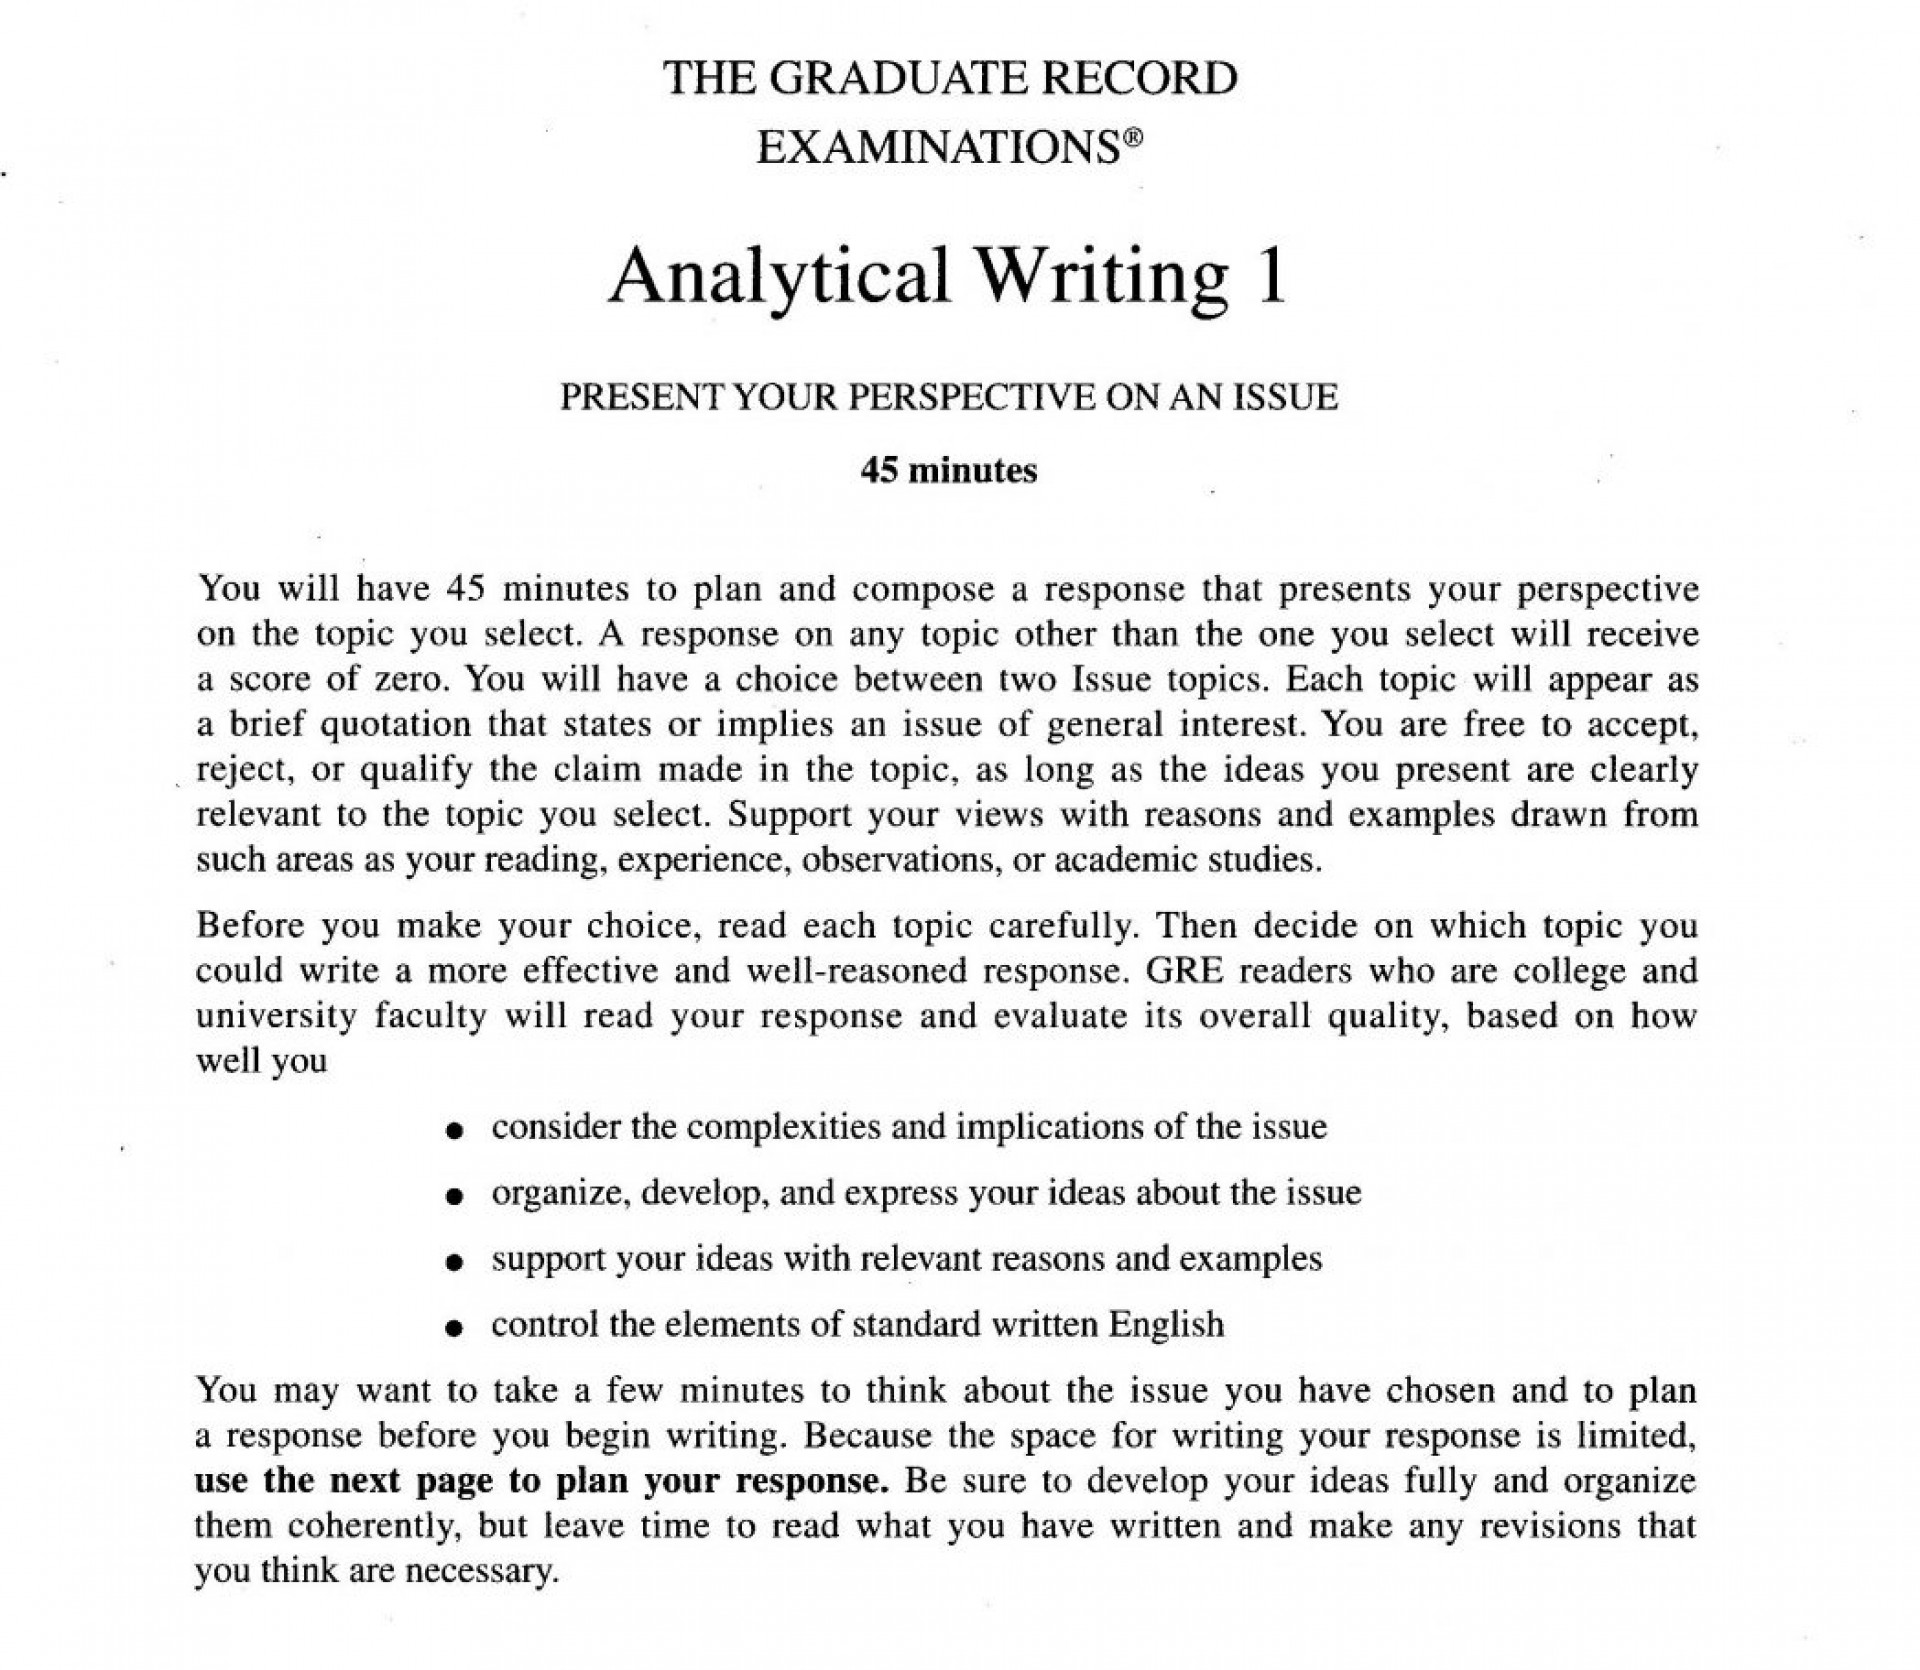 005 Gre Essays How To Write Essay Goal Blocke Analytical Writing Argument Good Great Issue Better Perfect 1048x912 Outstanding Pool Answers Book Pdf 1920